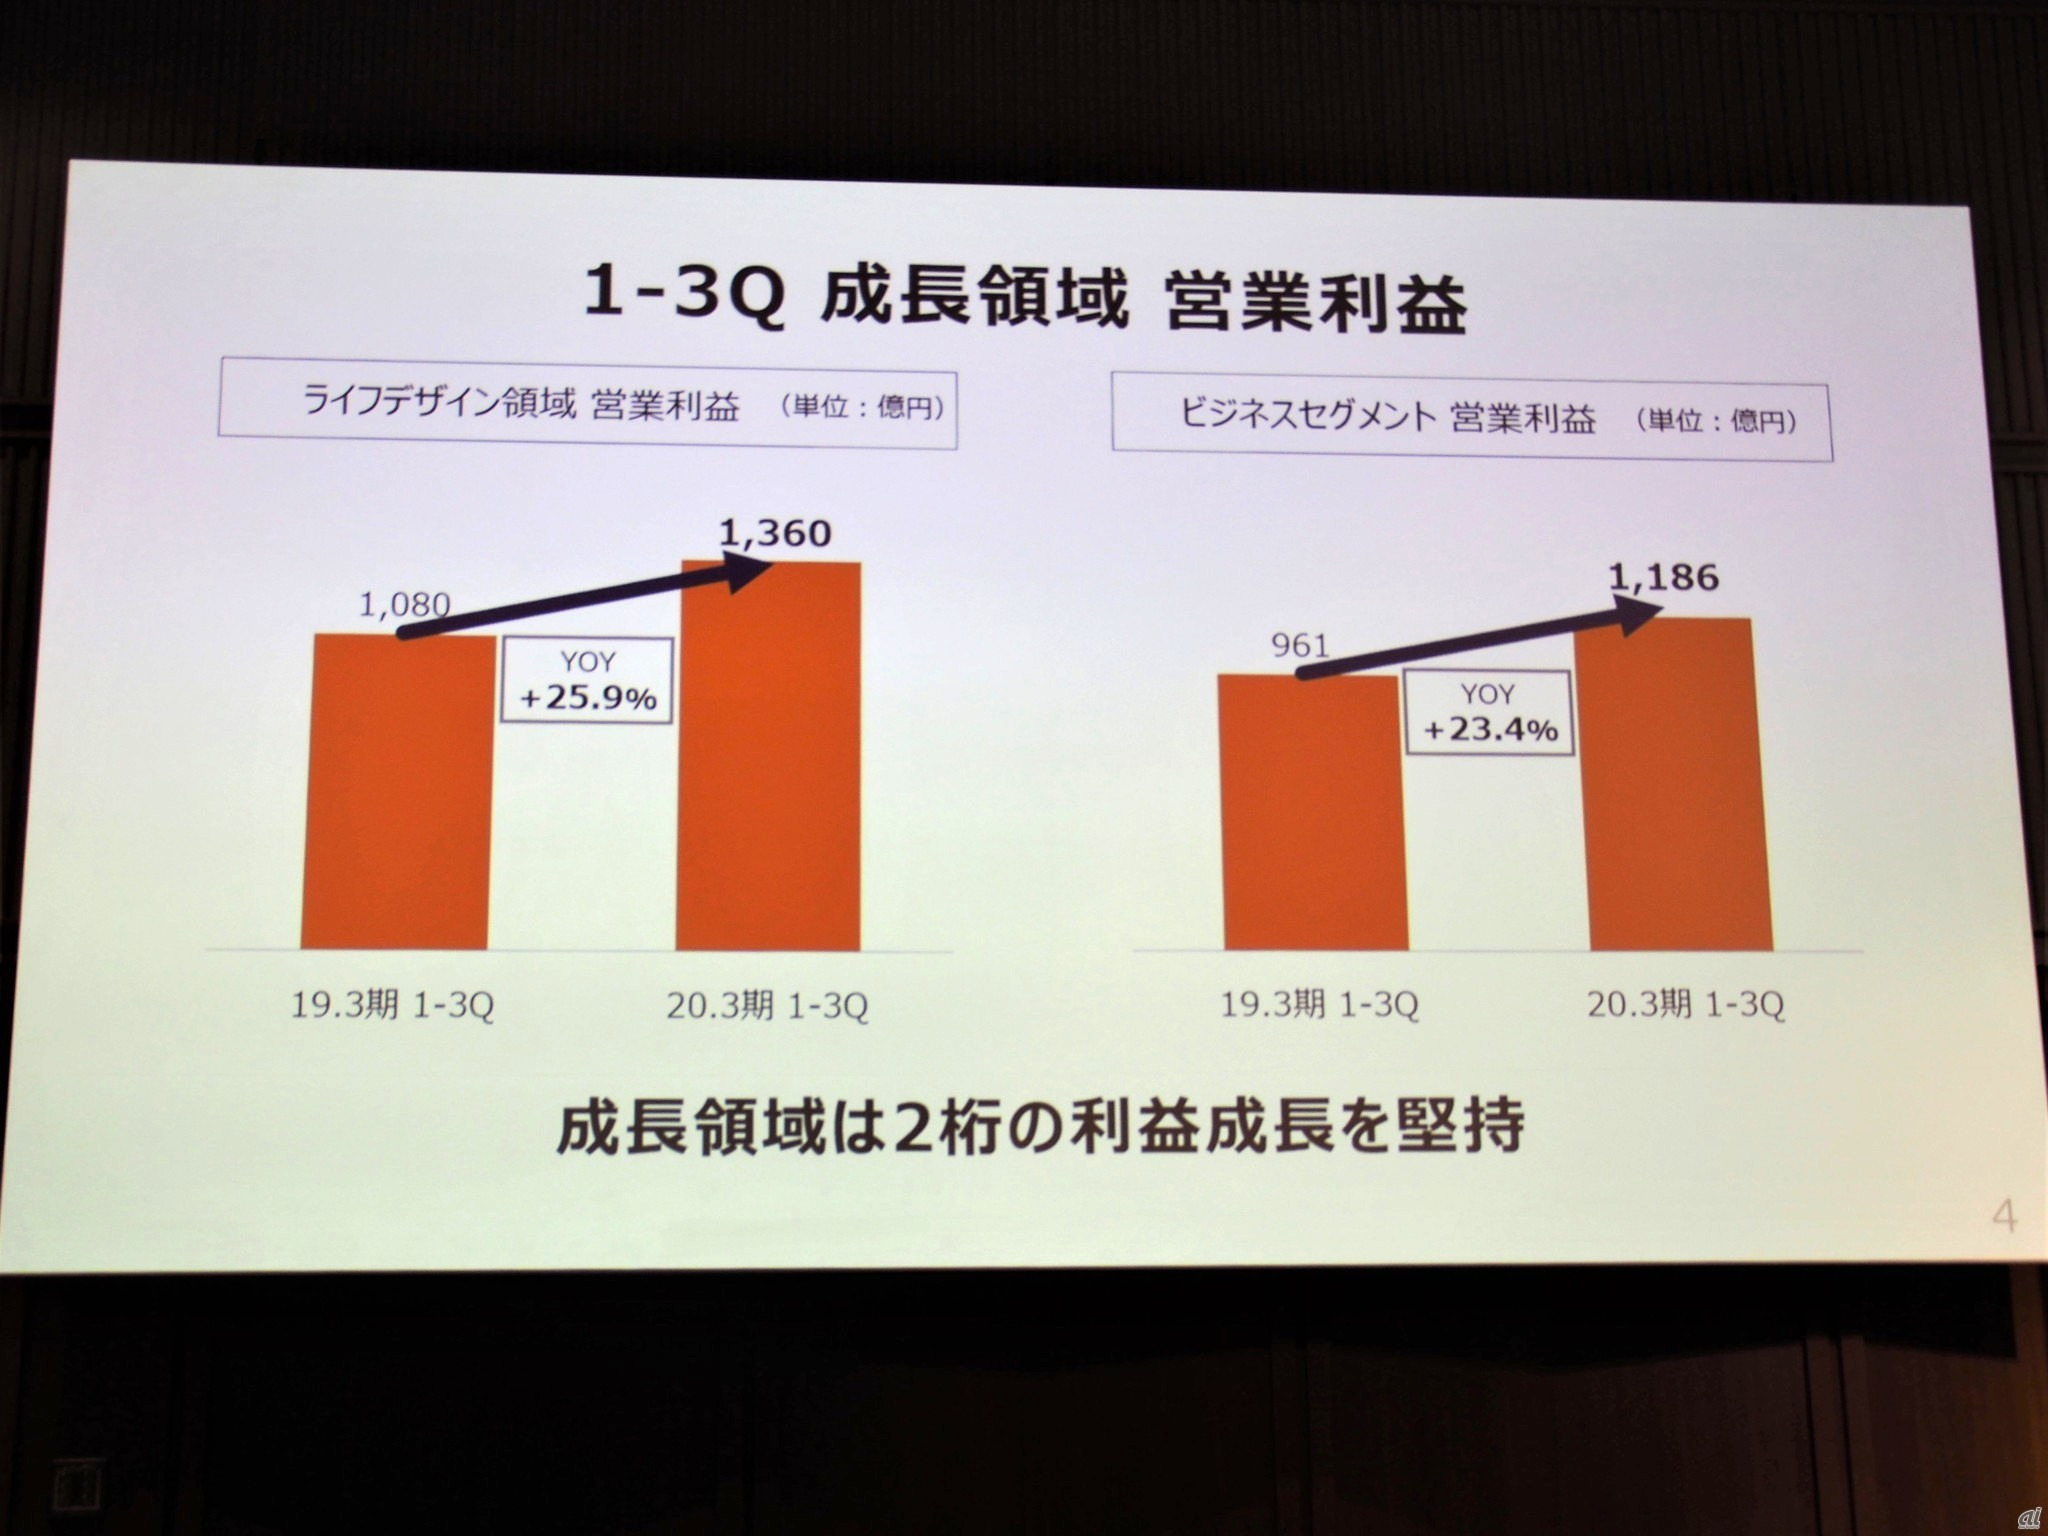 KDDI positioned as a growth area, with strong double-digit profit growth in both the life design area and the business segment underpinning business recovery